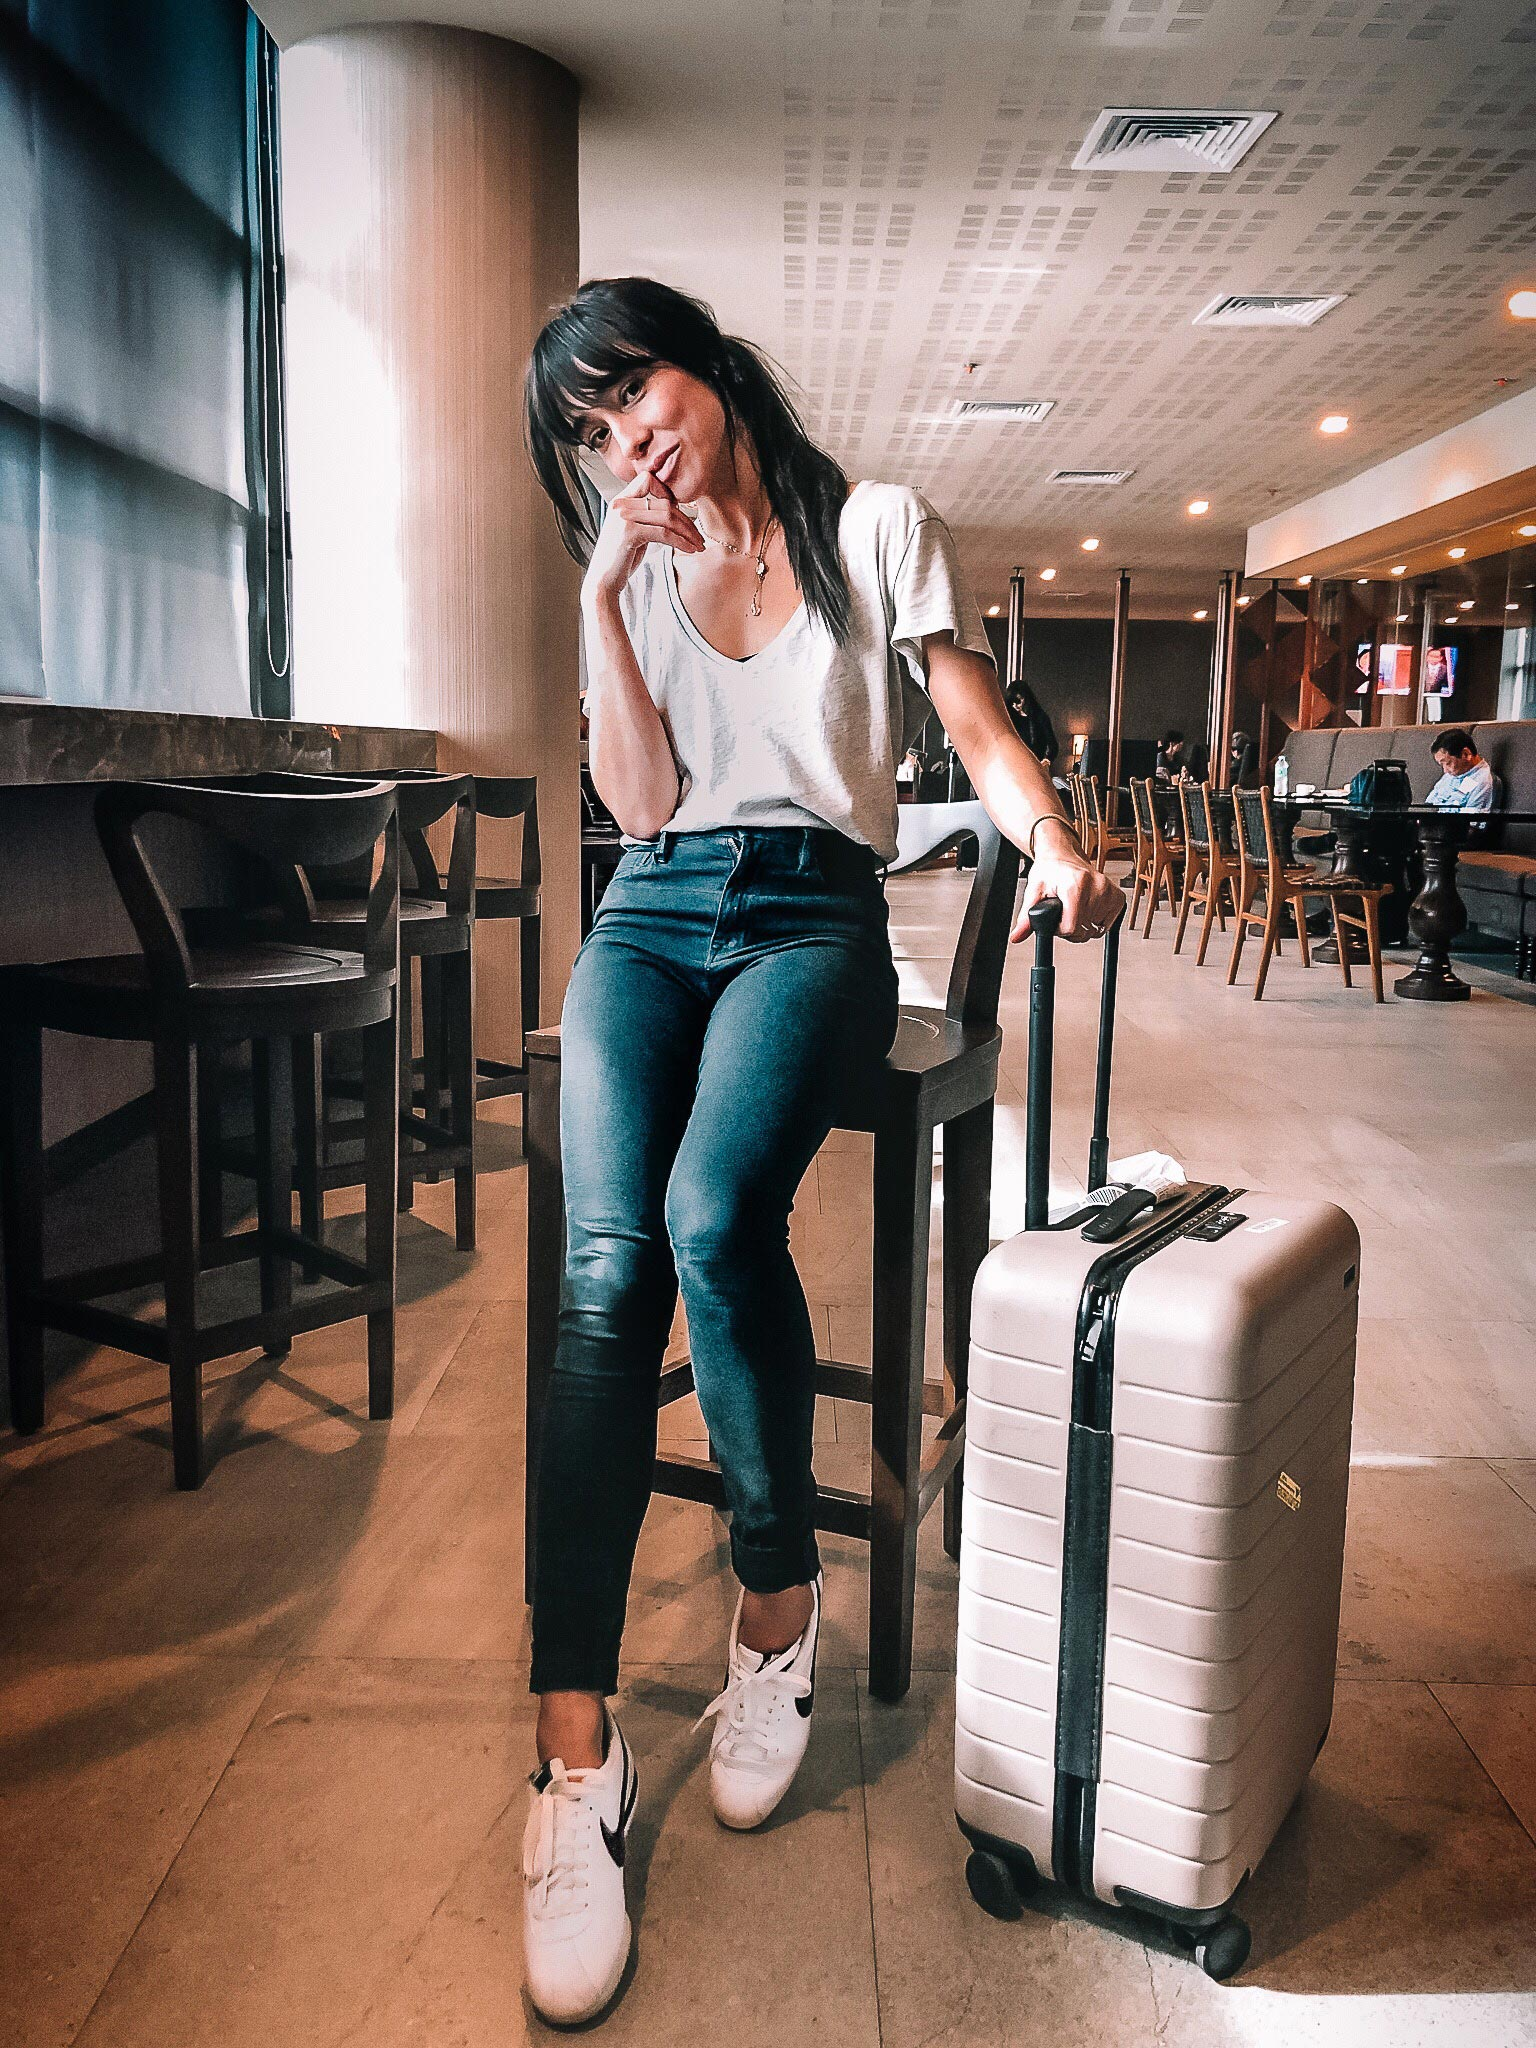 Traackr talks to Haley Dasovich, travel influencer and vlogger.